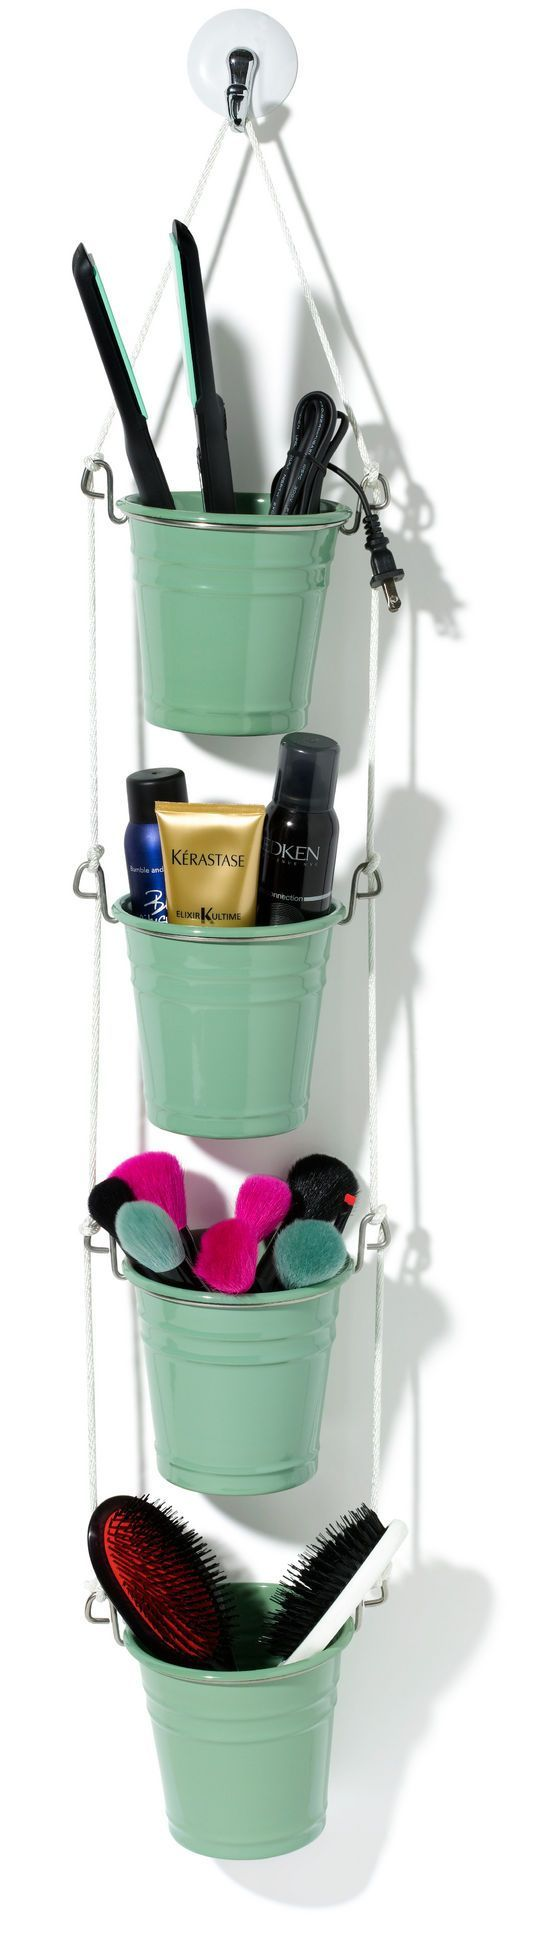 Keep your hair, bath or garden supplies organized with these distinctive hanging buckets, perfect for indoor or outdoor use or as a gift.: